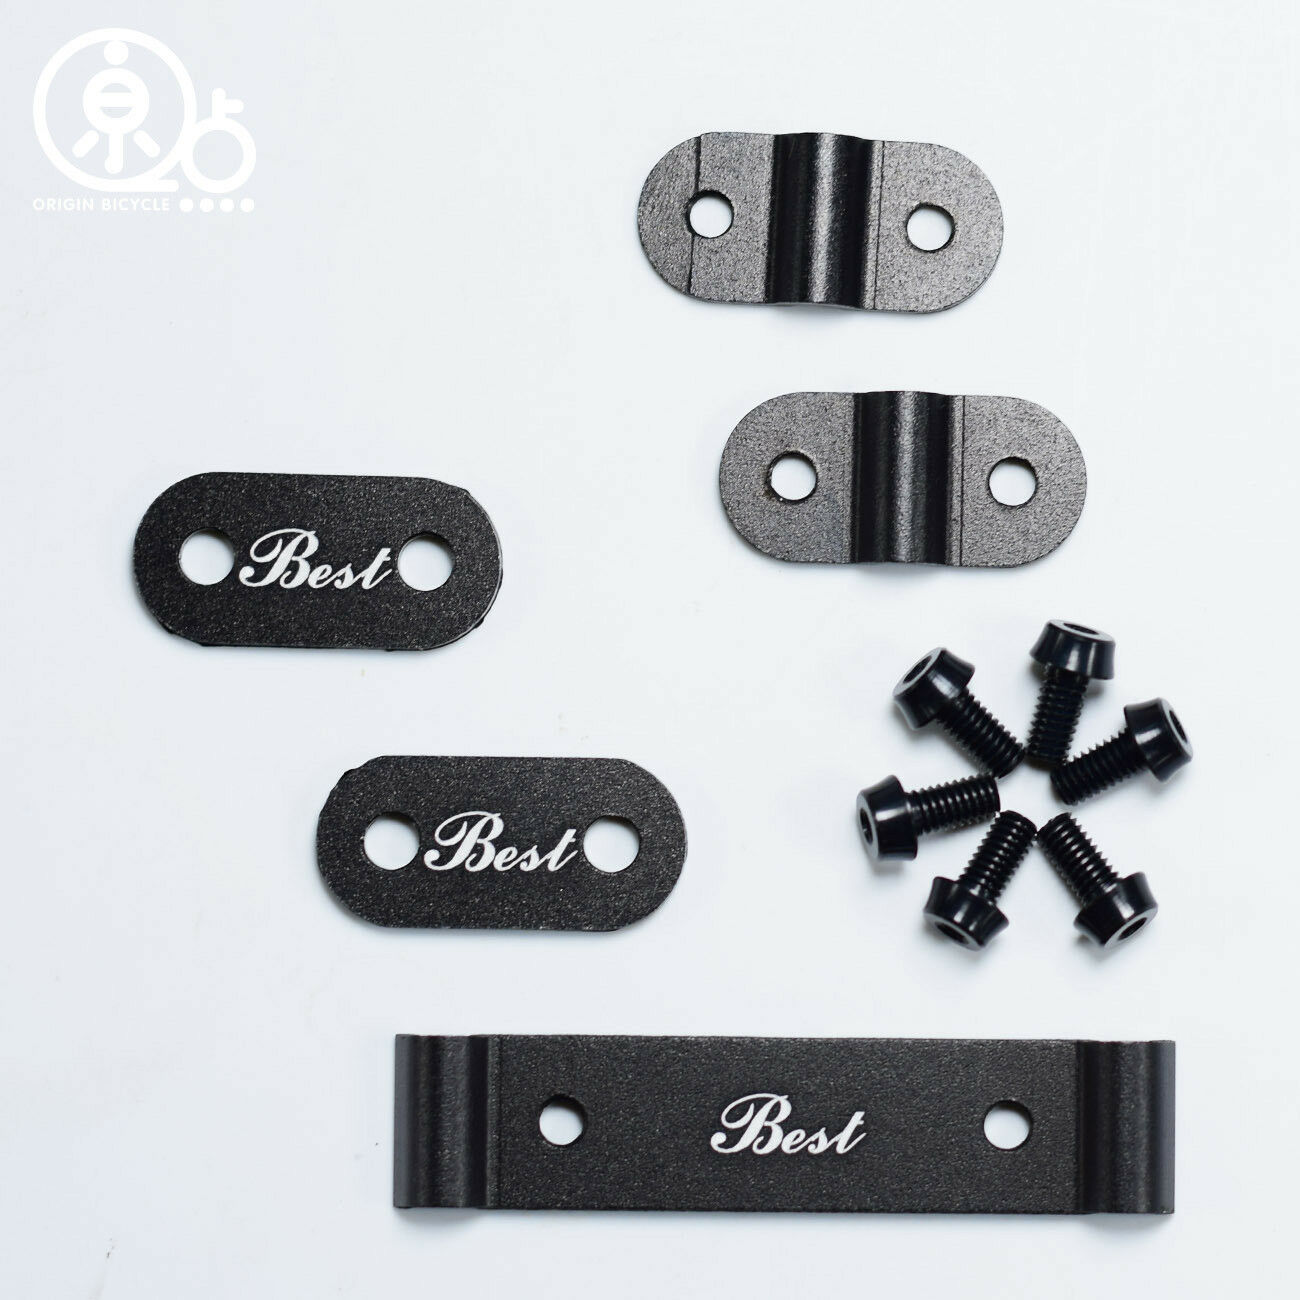 Mudguard Plates with Bolts Stays Parts  Set for L Model for Brompton Bicycle